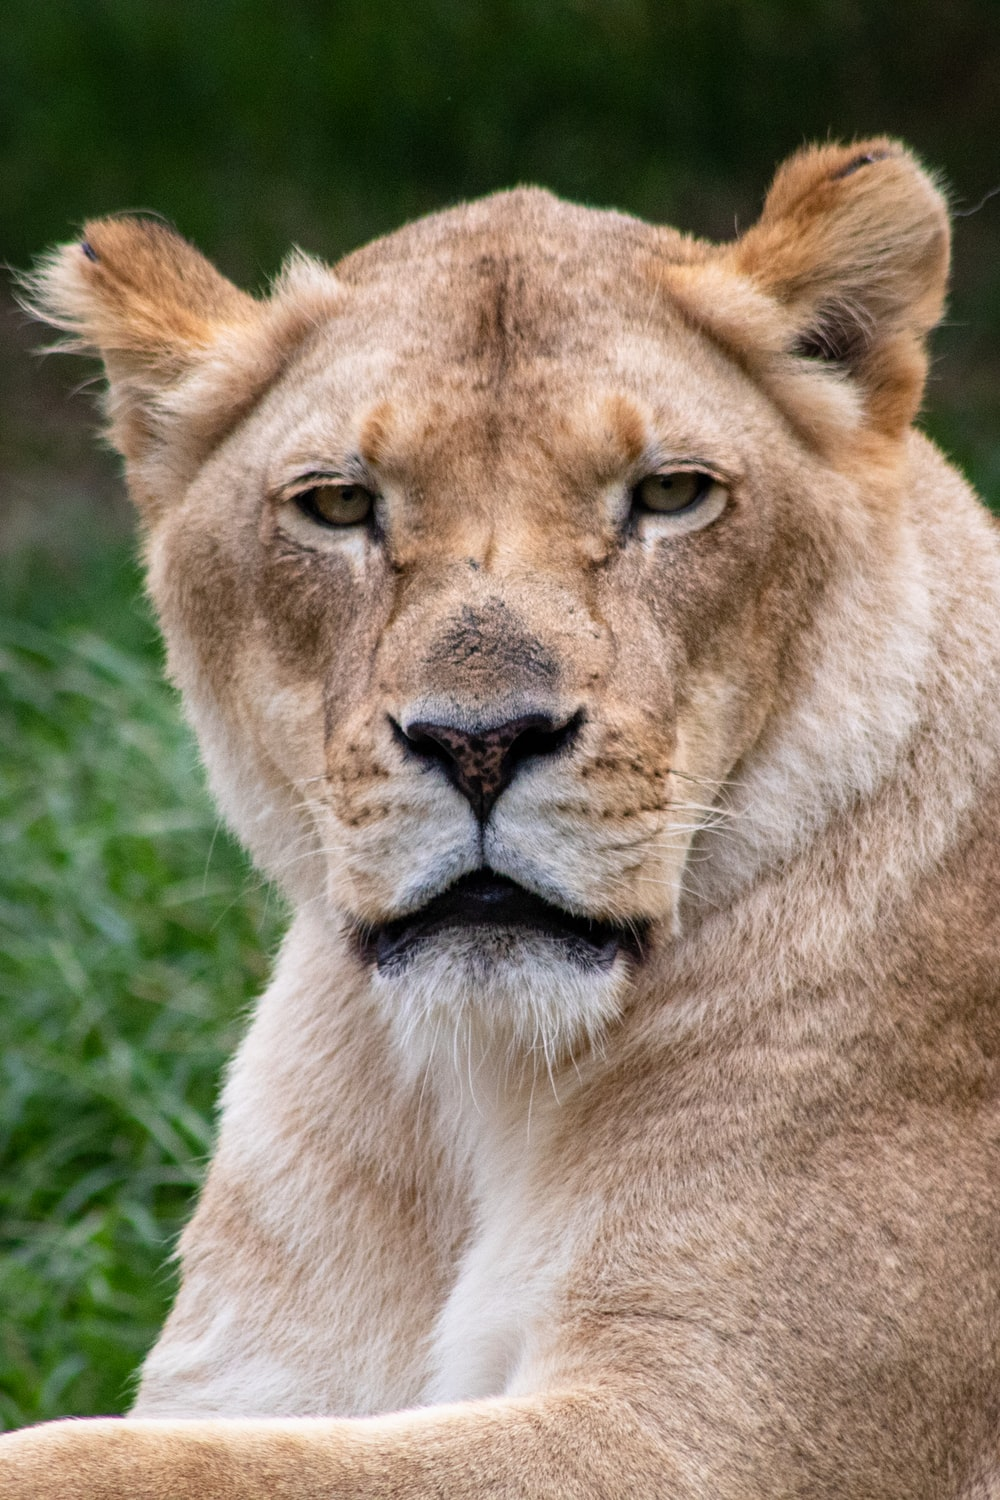 close-up photo of brown lioness